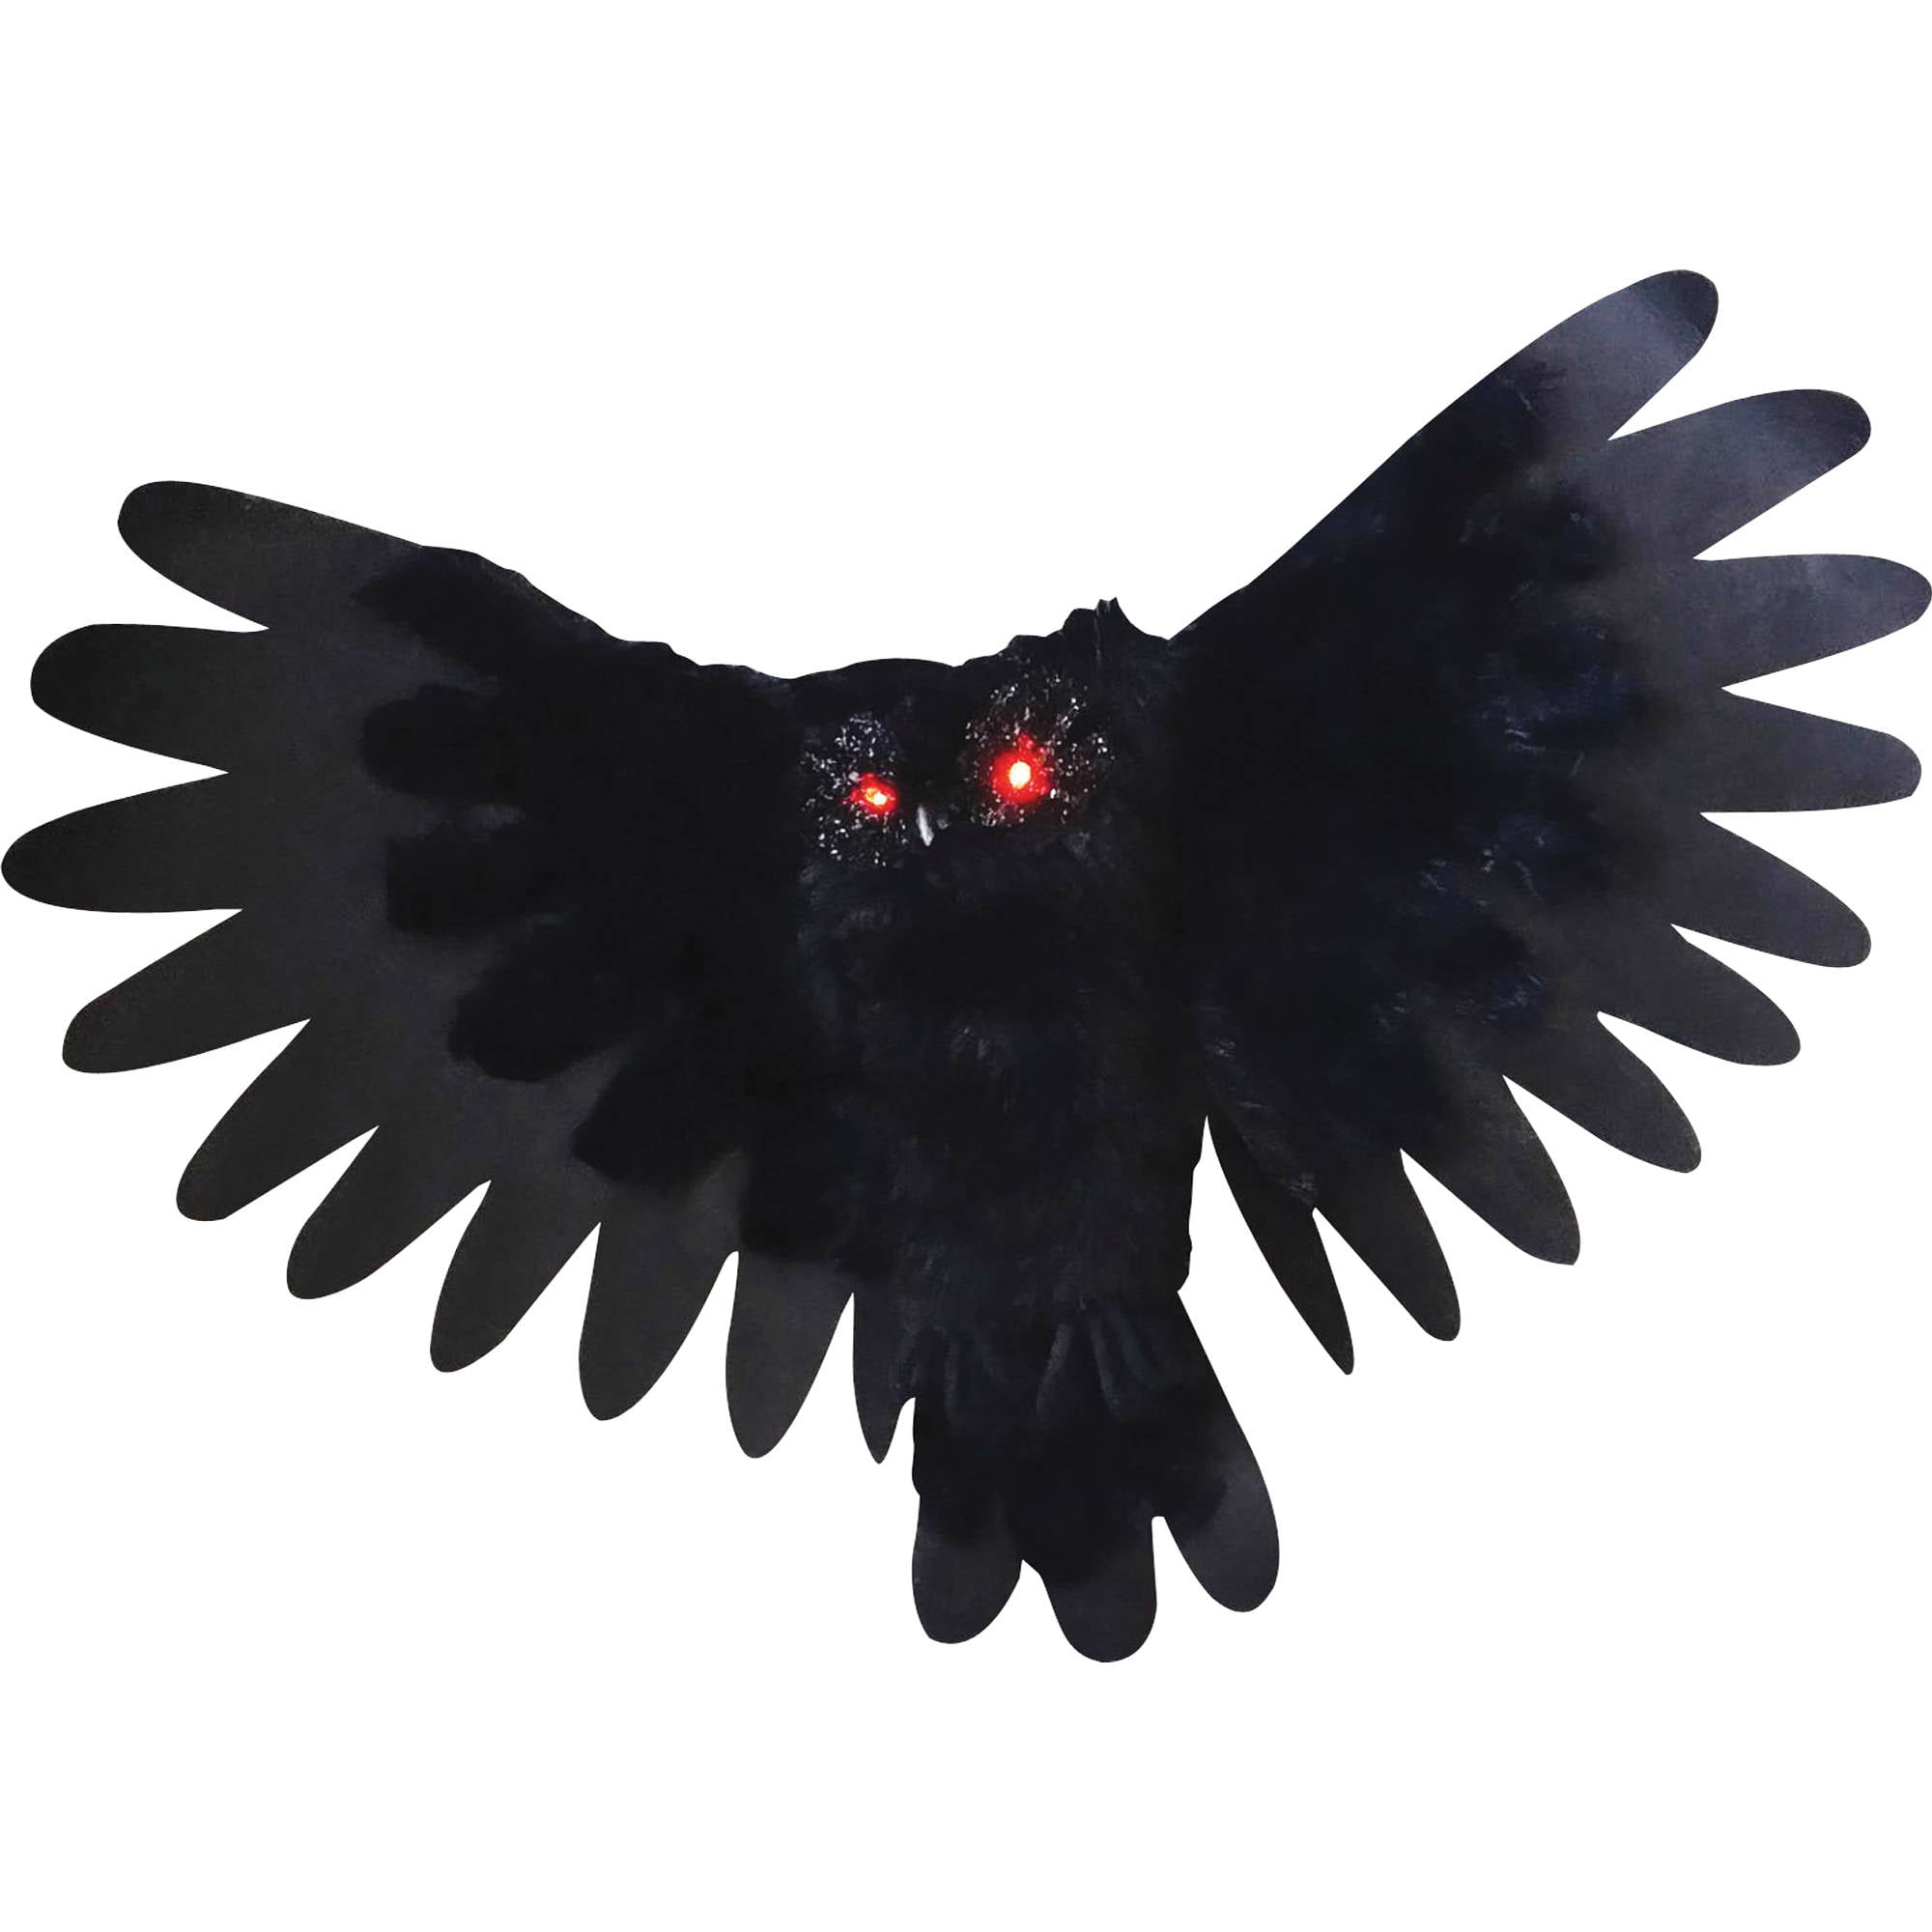 animated owl halloween decoration walmartcom - Animated Halloween Decorations